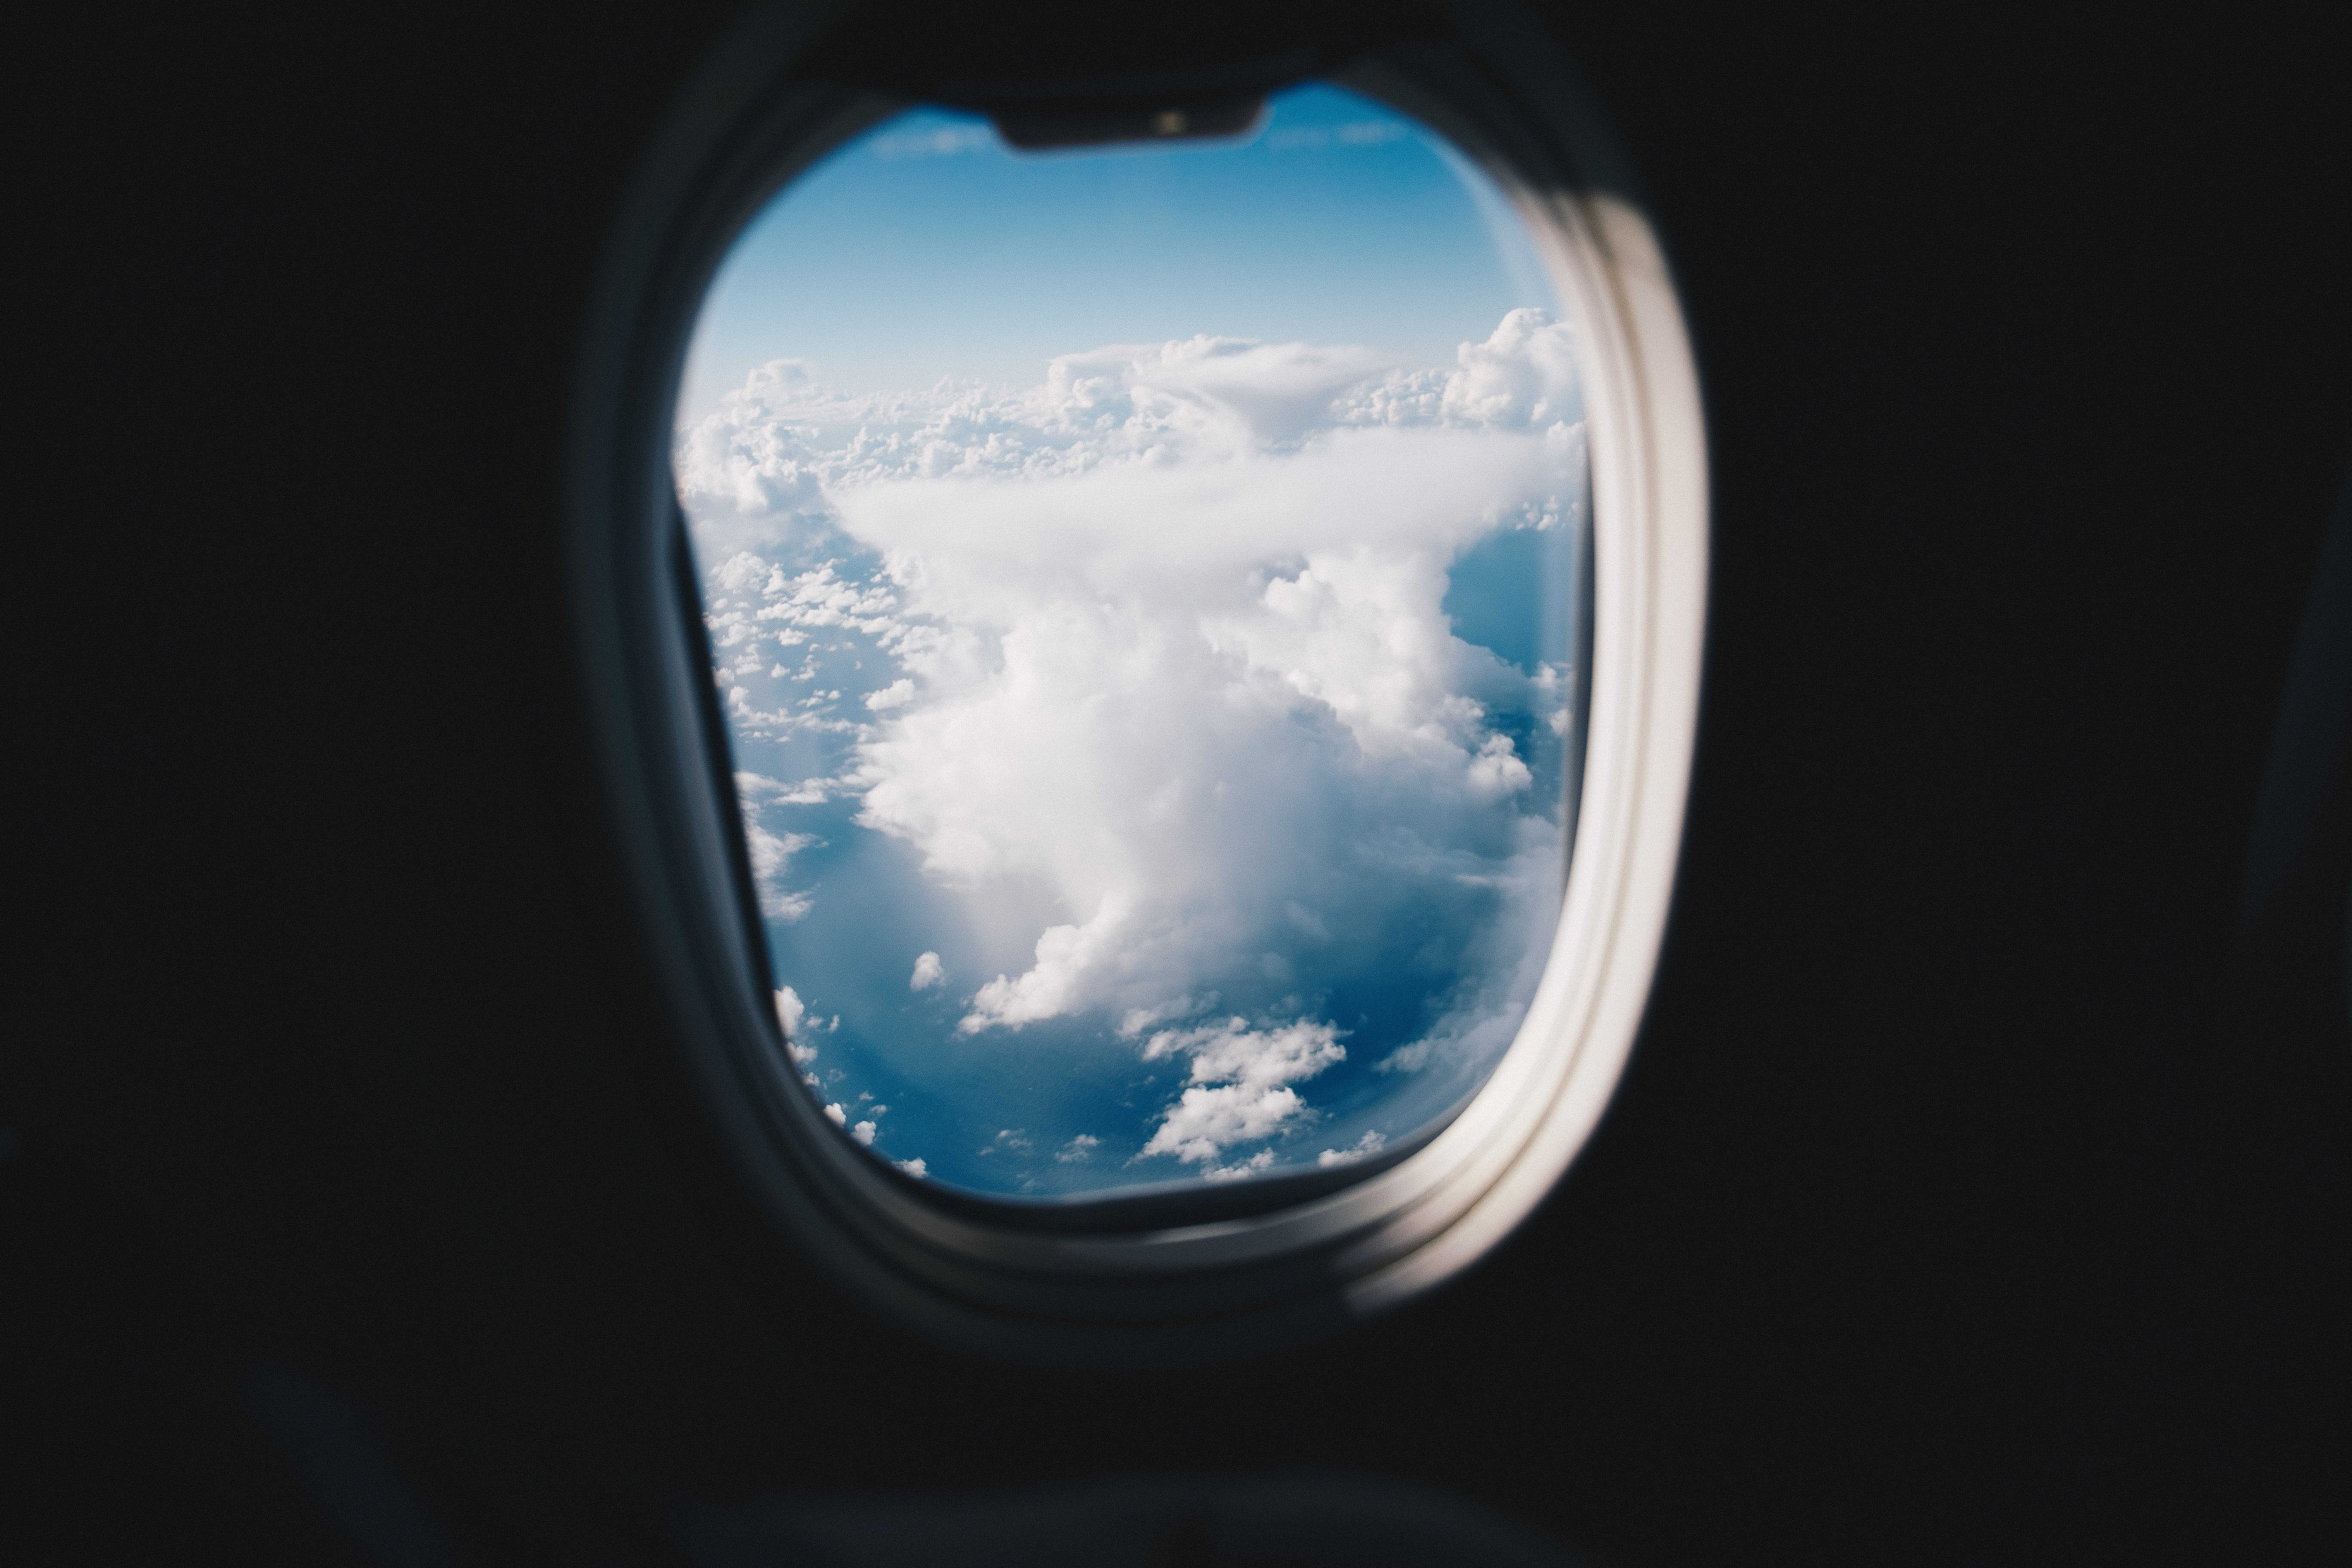 A view from an airplane window on high clouds over the Tasman Sea